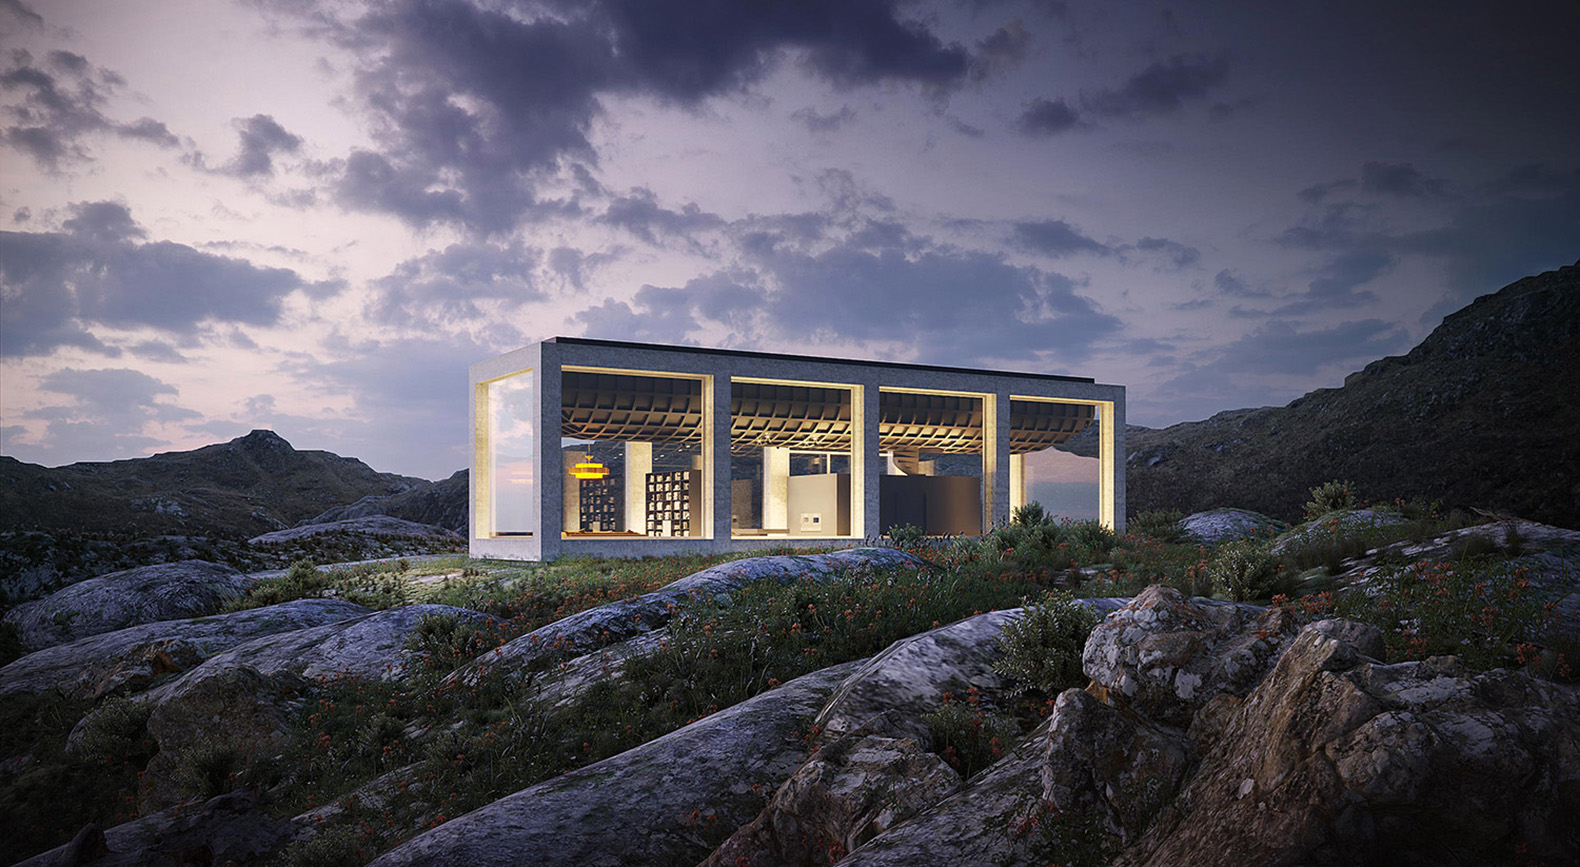 Norway's breathtaking Infinity House has giant windows instead of walls